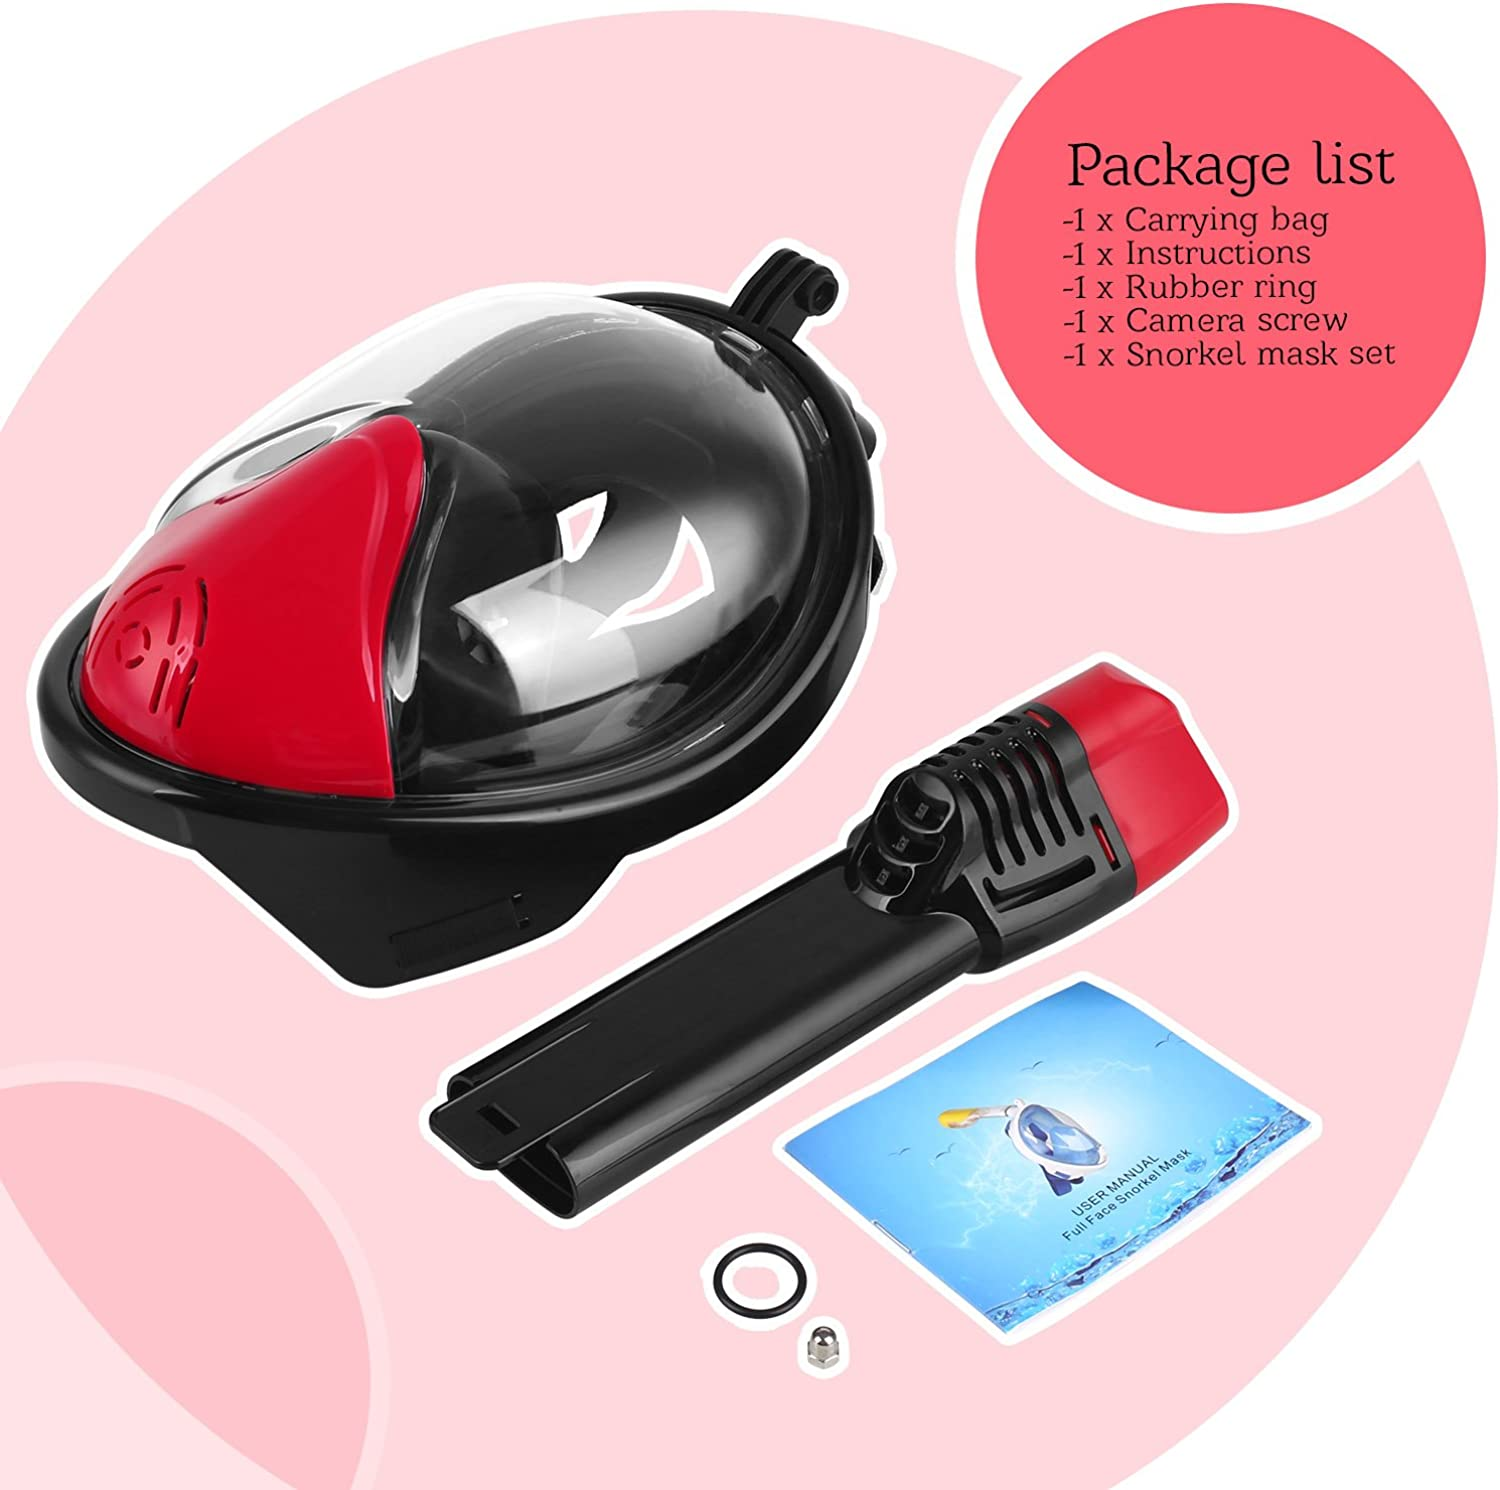 Hongfei Silicone PVC Full Face Design for Diving Black Red Comfortable Breathable Swimming Safety Sporting Equipment